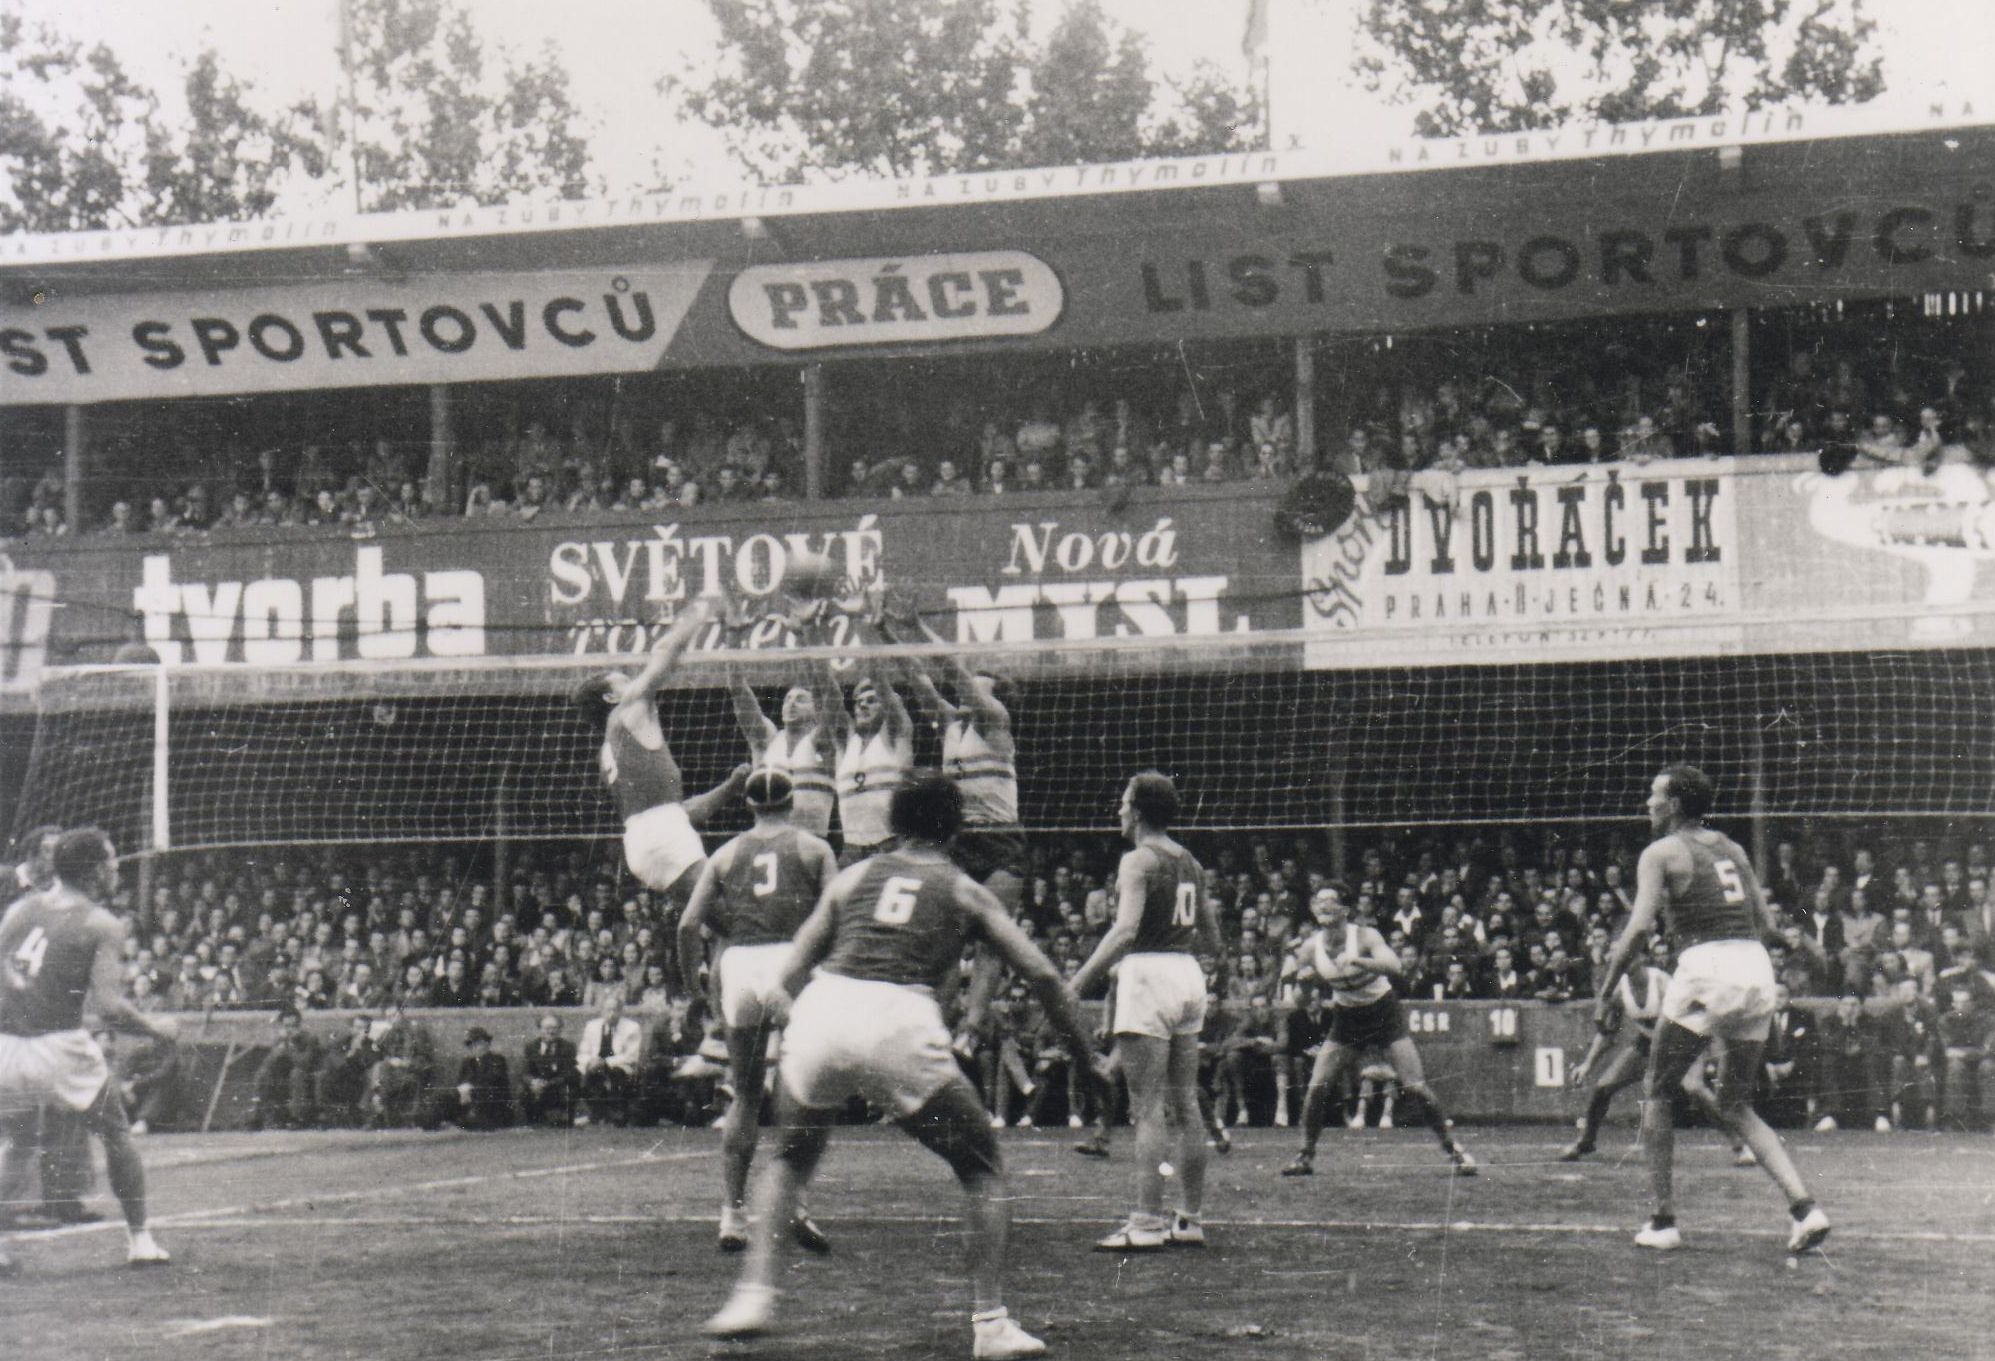 history of volleyball The fivb volleyball men's world championship poland 2014 begins on august 30 with a dream opening match between the hosts and serbia, who will play to a record 62,000 spectators at the national stadium in warsaw.